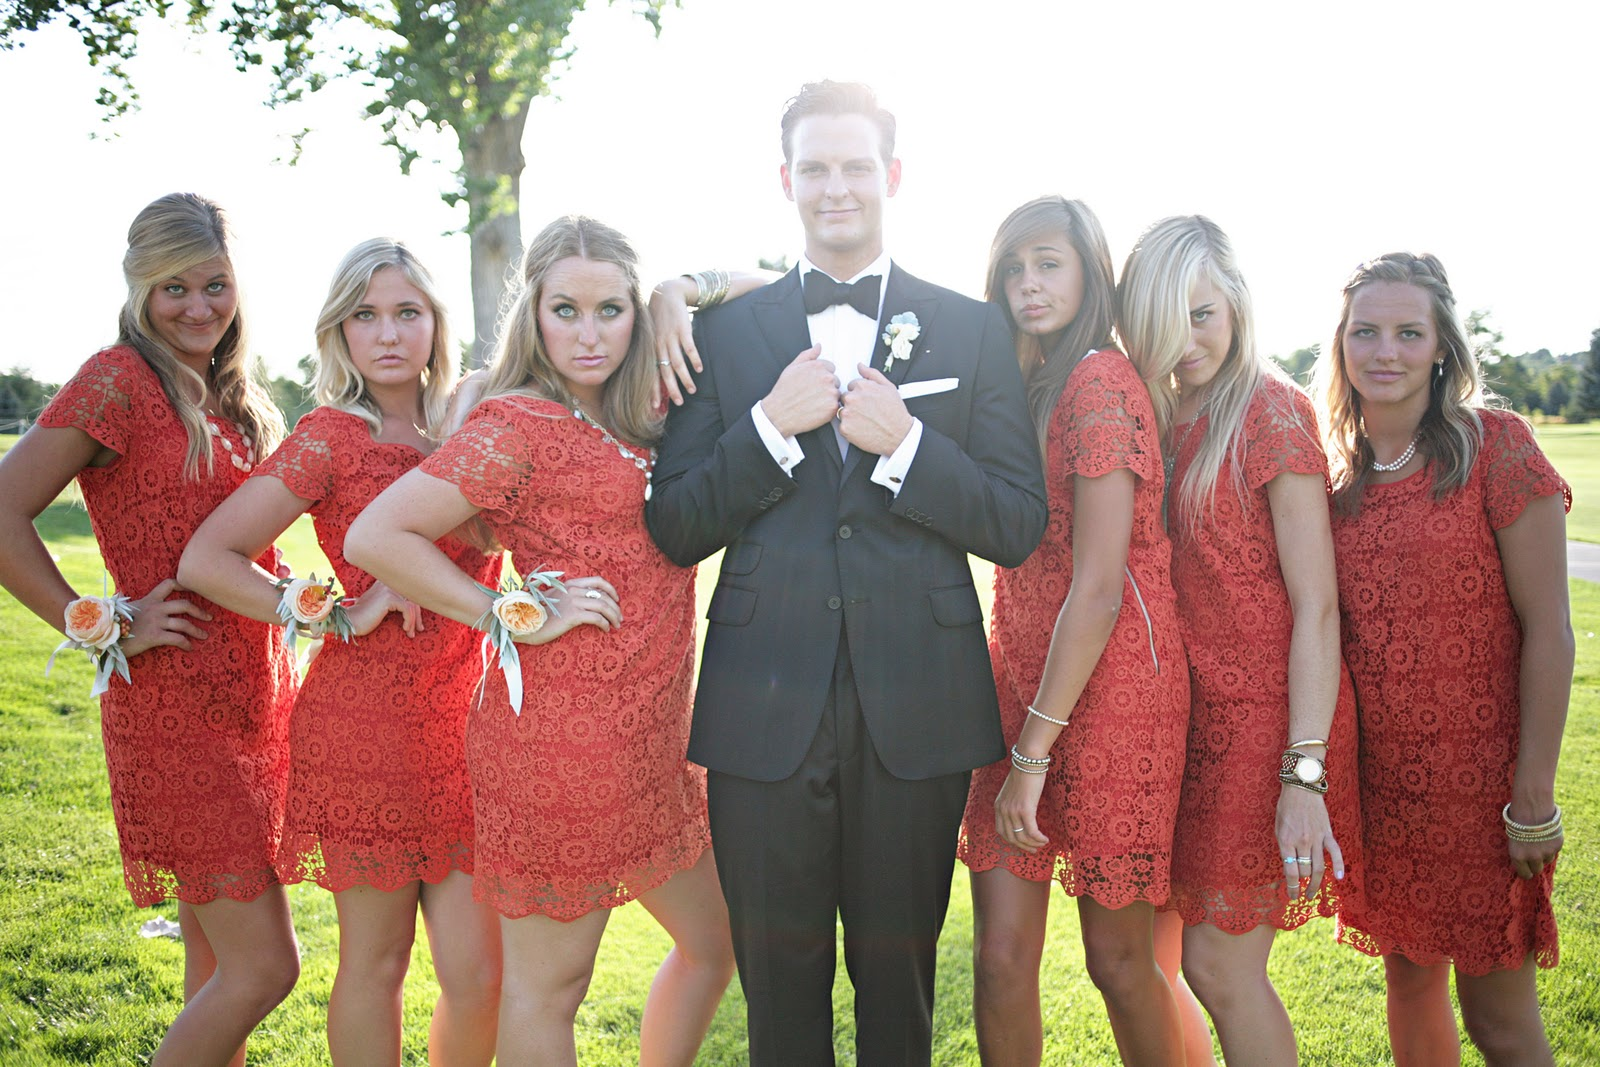 62333a685880 Life in Technicolor: Wedding Pictures Day 4: Bridesmaids, Groomsmen, and  Flower Girls